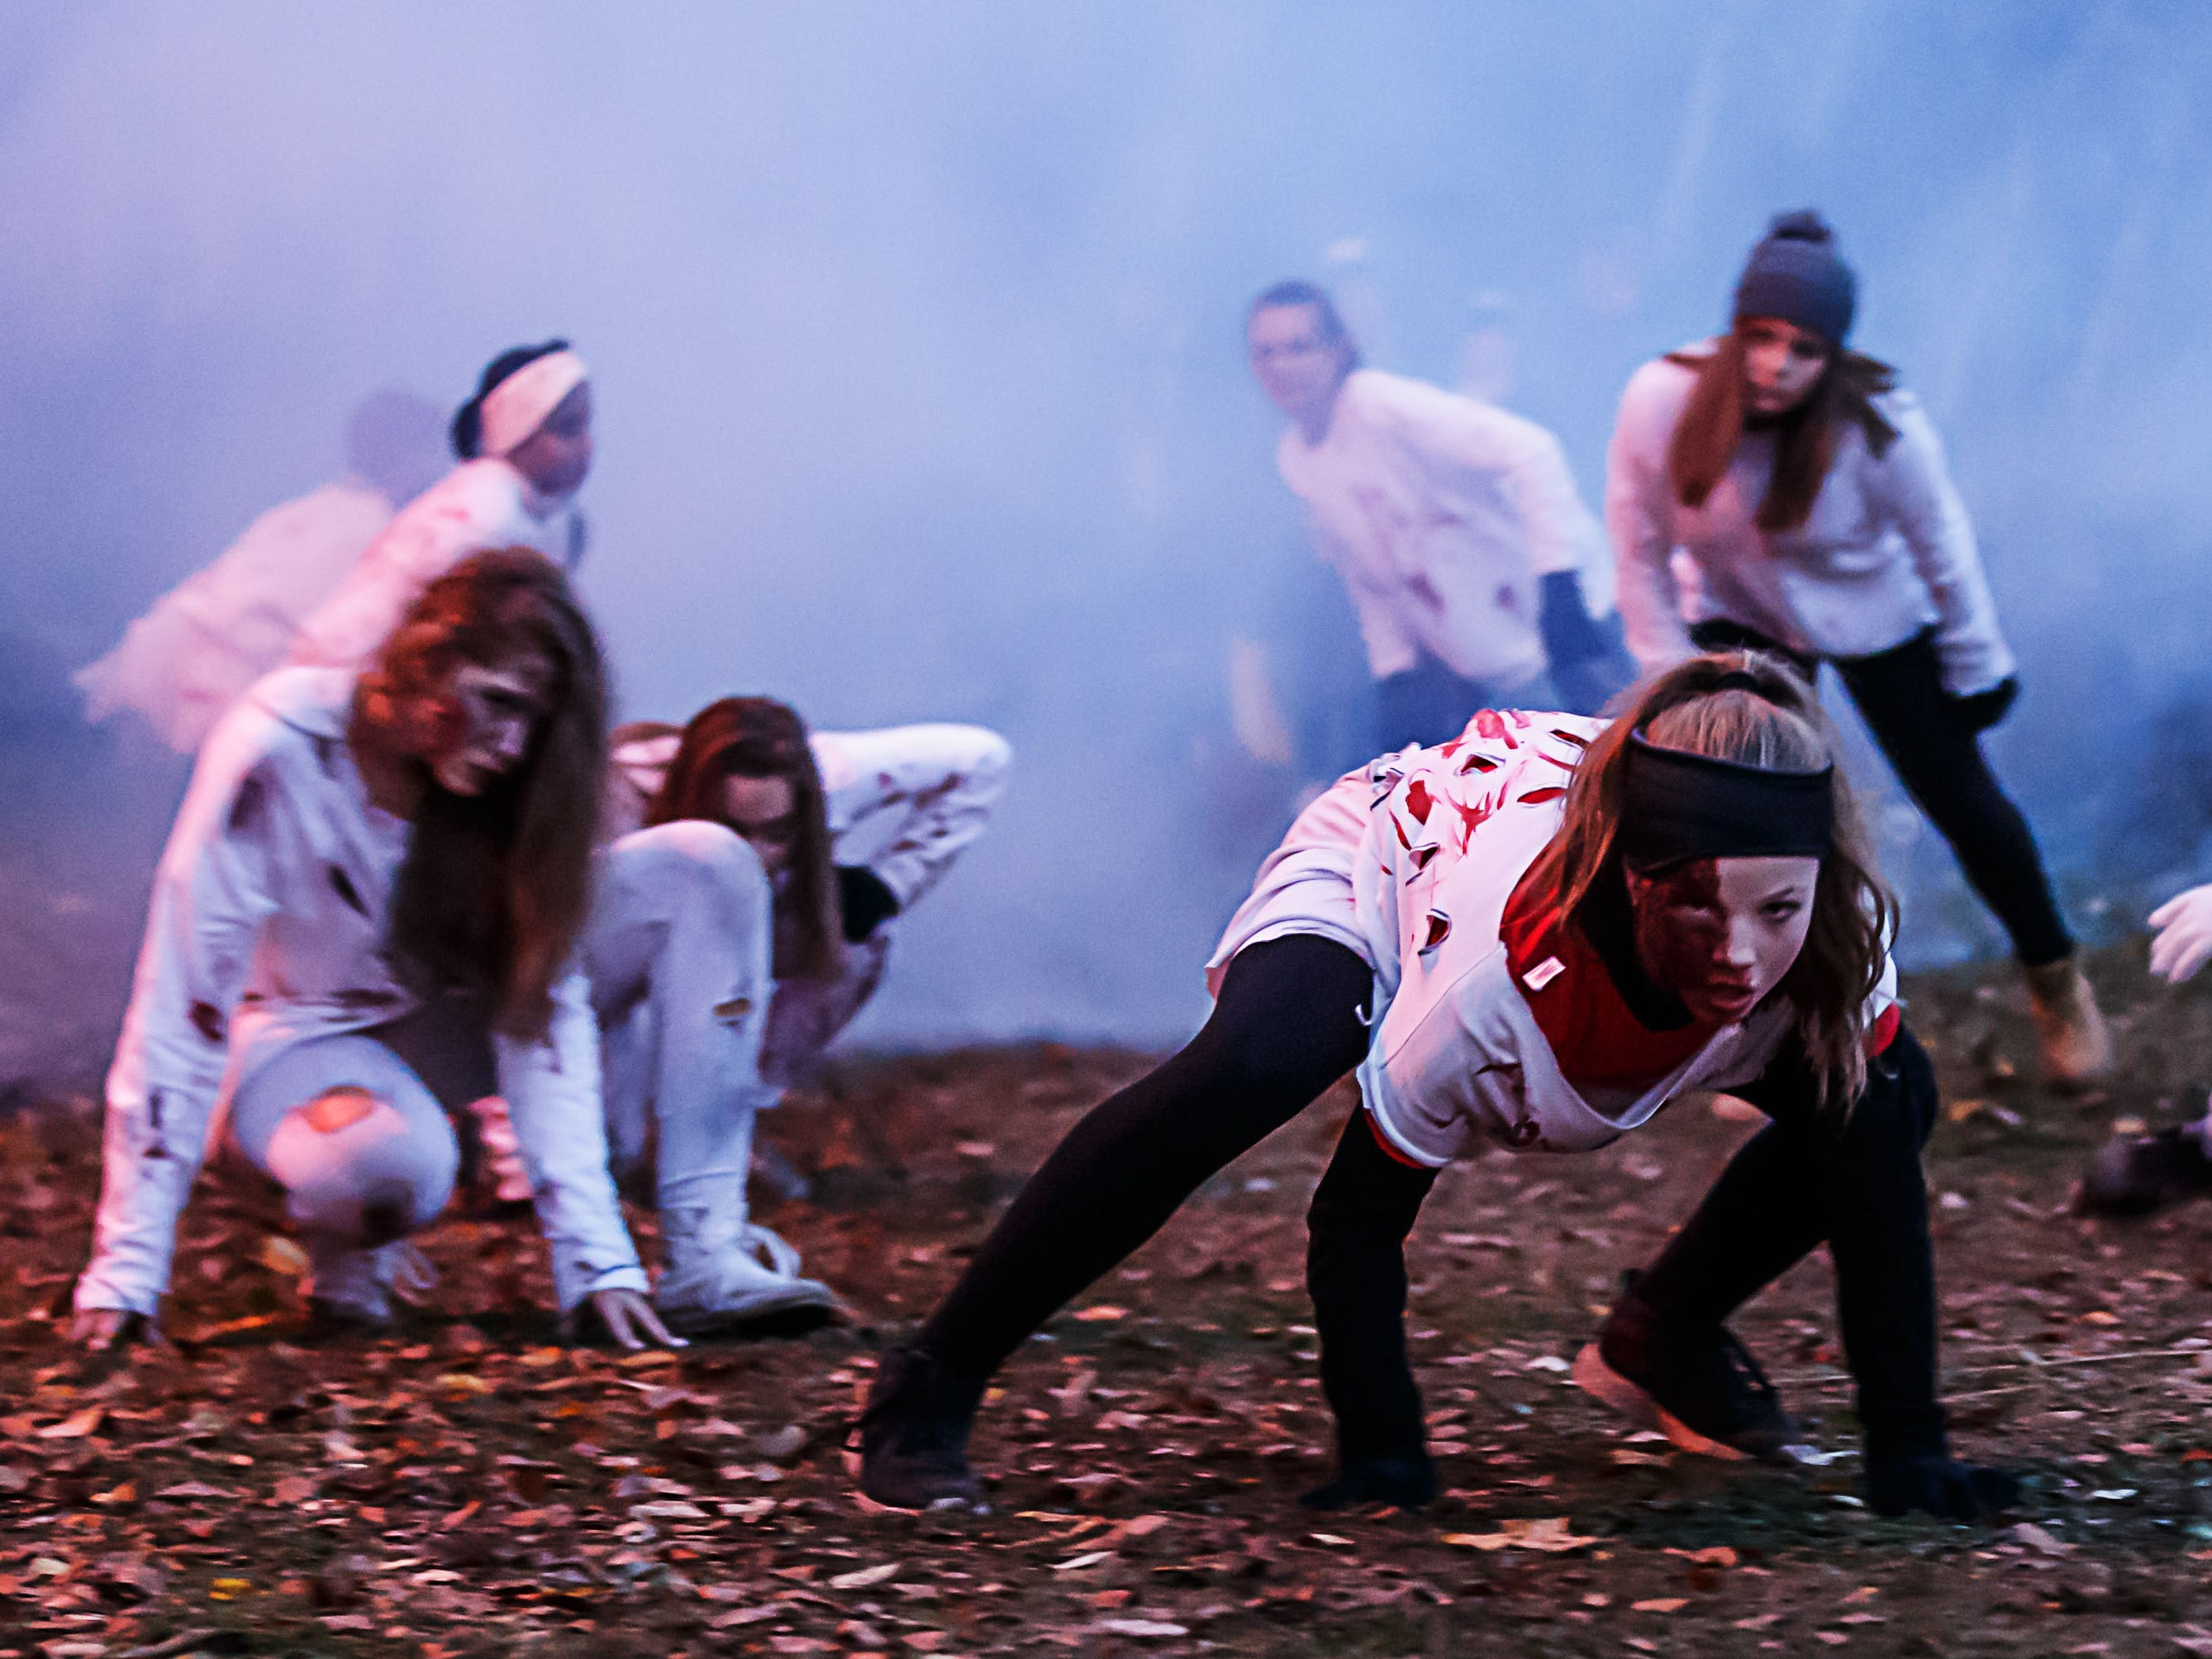 Zombies from the Waukesha Xtreme Dance Team emerge from a foggy trail during the 21st annual Fright Hike at Lapham Peak State Park in Delafield on Saturday, Oct. 13, 2018. The two-night event, hosted by the Friends of Lapham Peak, features a 1-mile walk through the dark forest riddled with ghosts and goblins followed by live music, a bonfire, concessions and more.